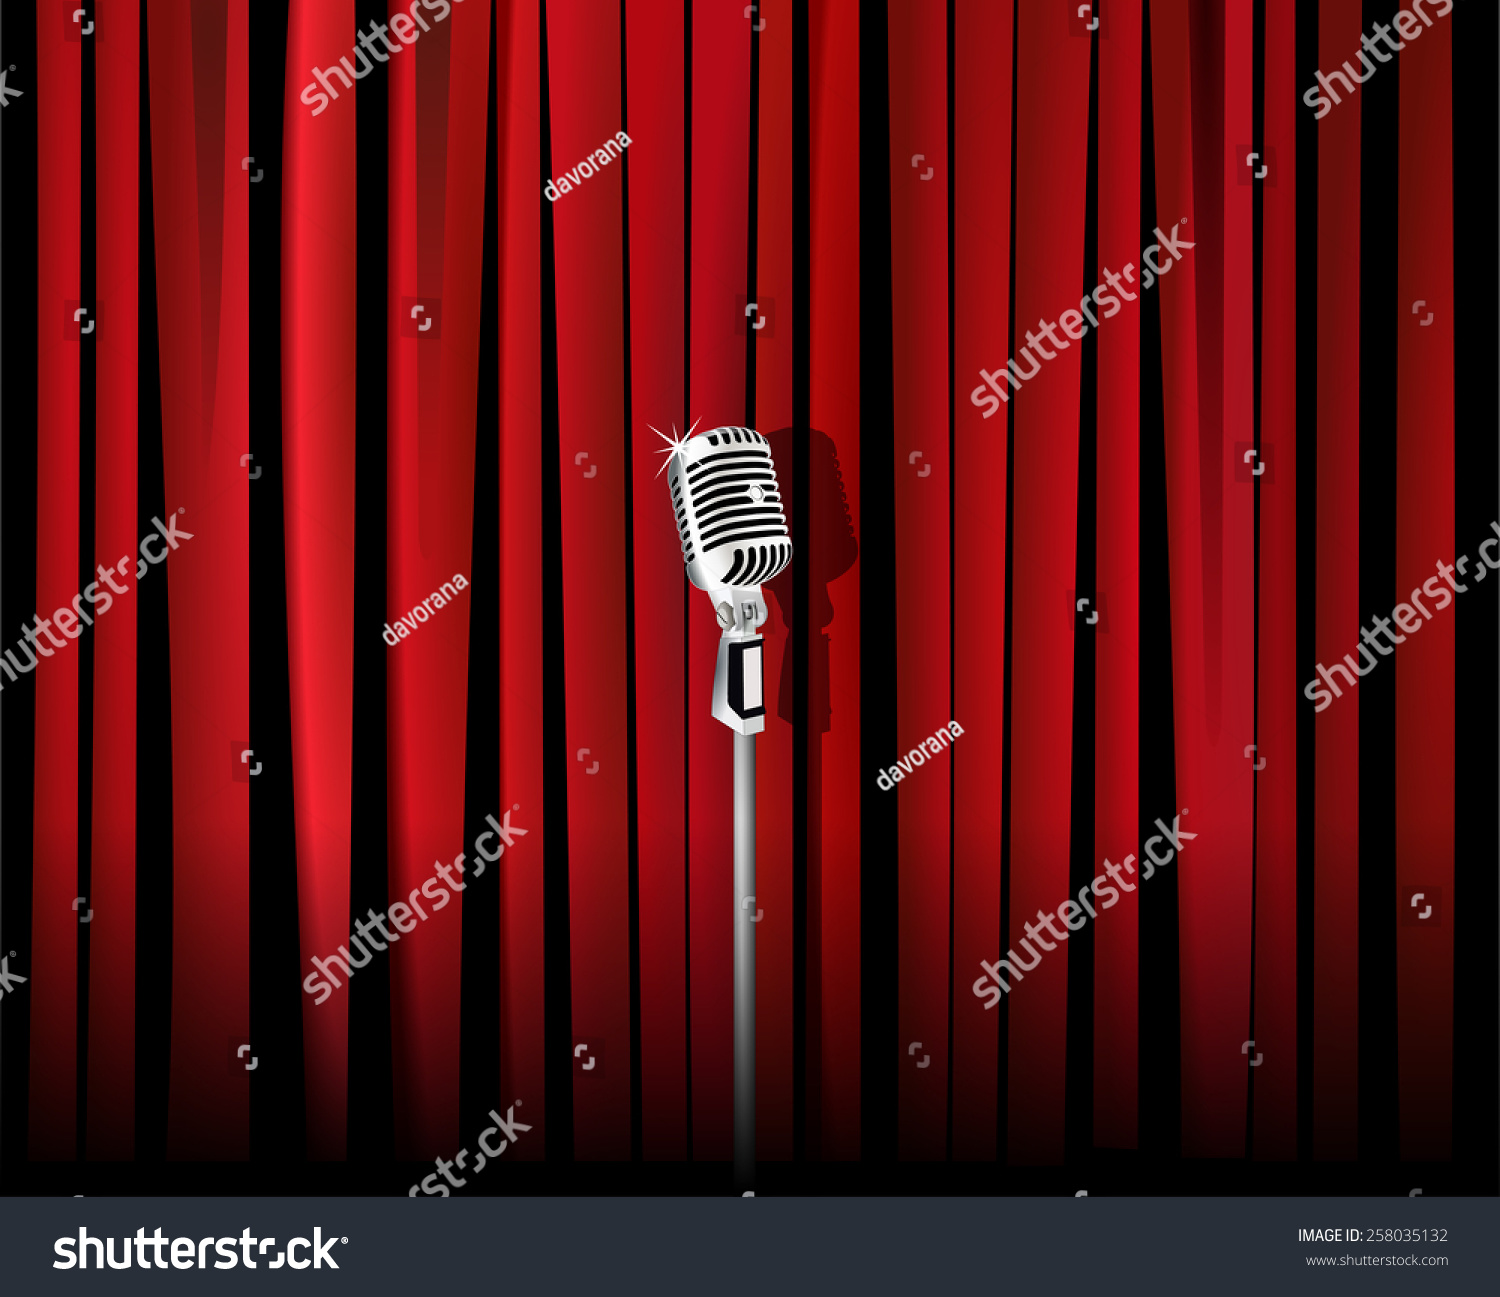 Red stage curtain with lights - Theater Curtains Backdrops Empty Stage Curtains With Lights Vintage Metal Microphone Against Red Curtain Backdrop